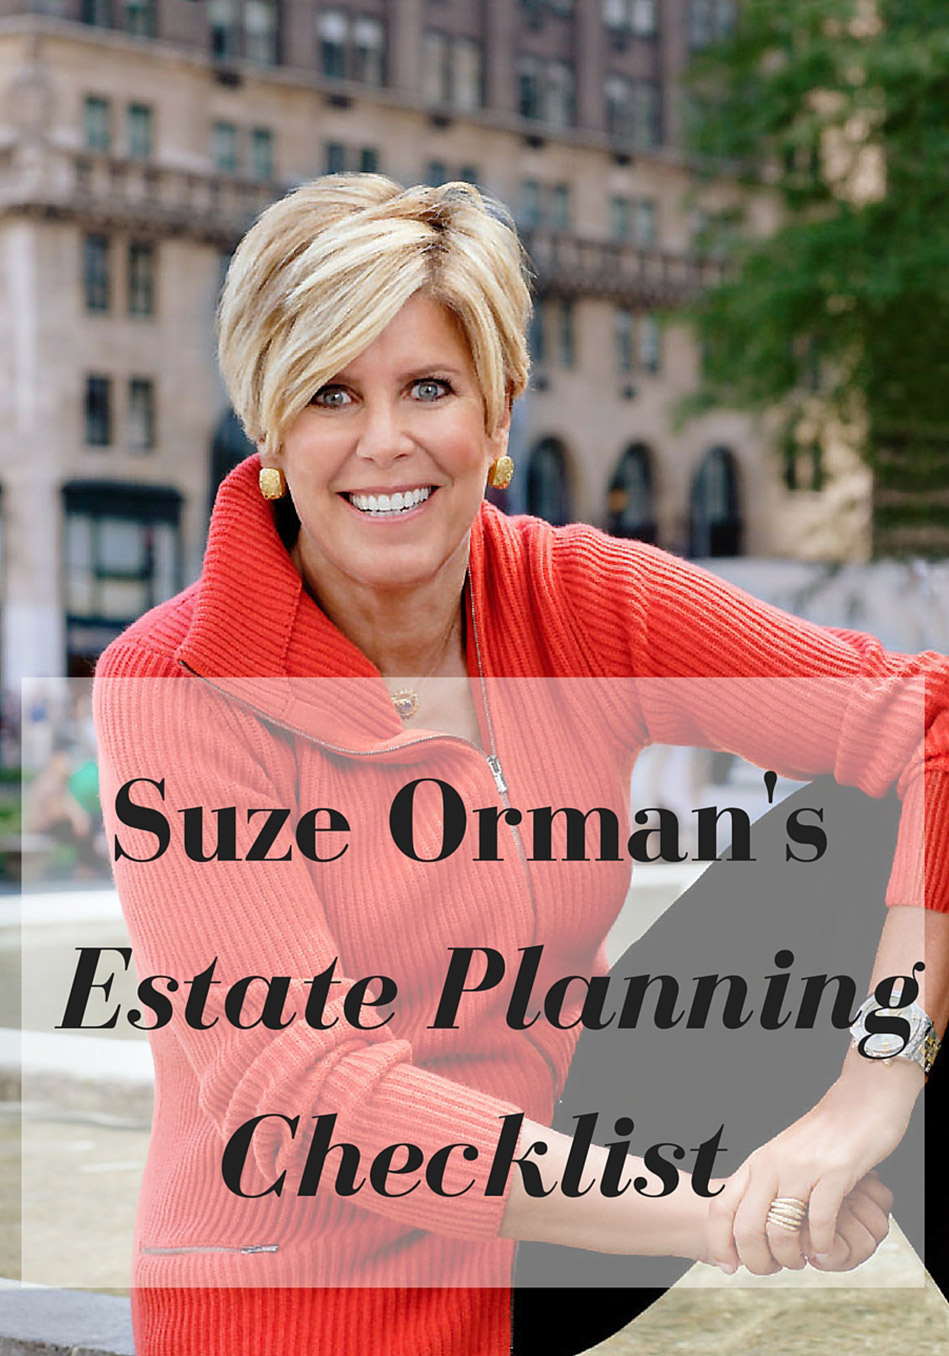 Worksheets Suze Orman Worksheets estate planning advice how to make a will suze orman orman